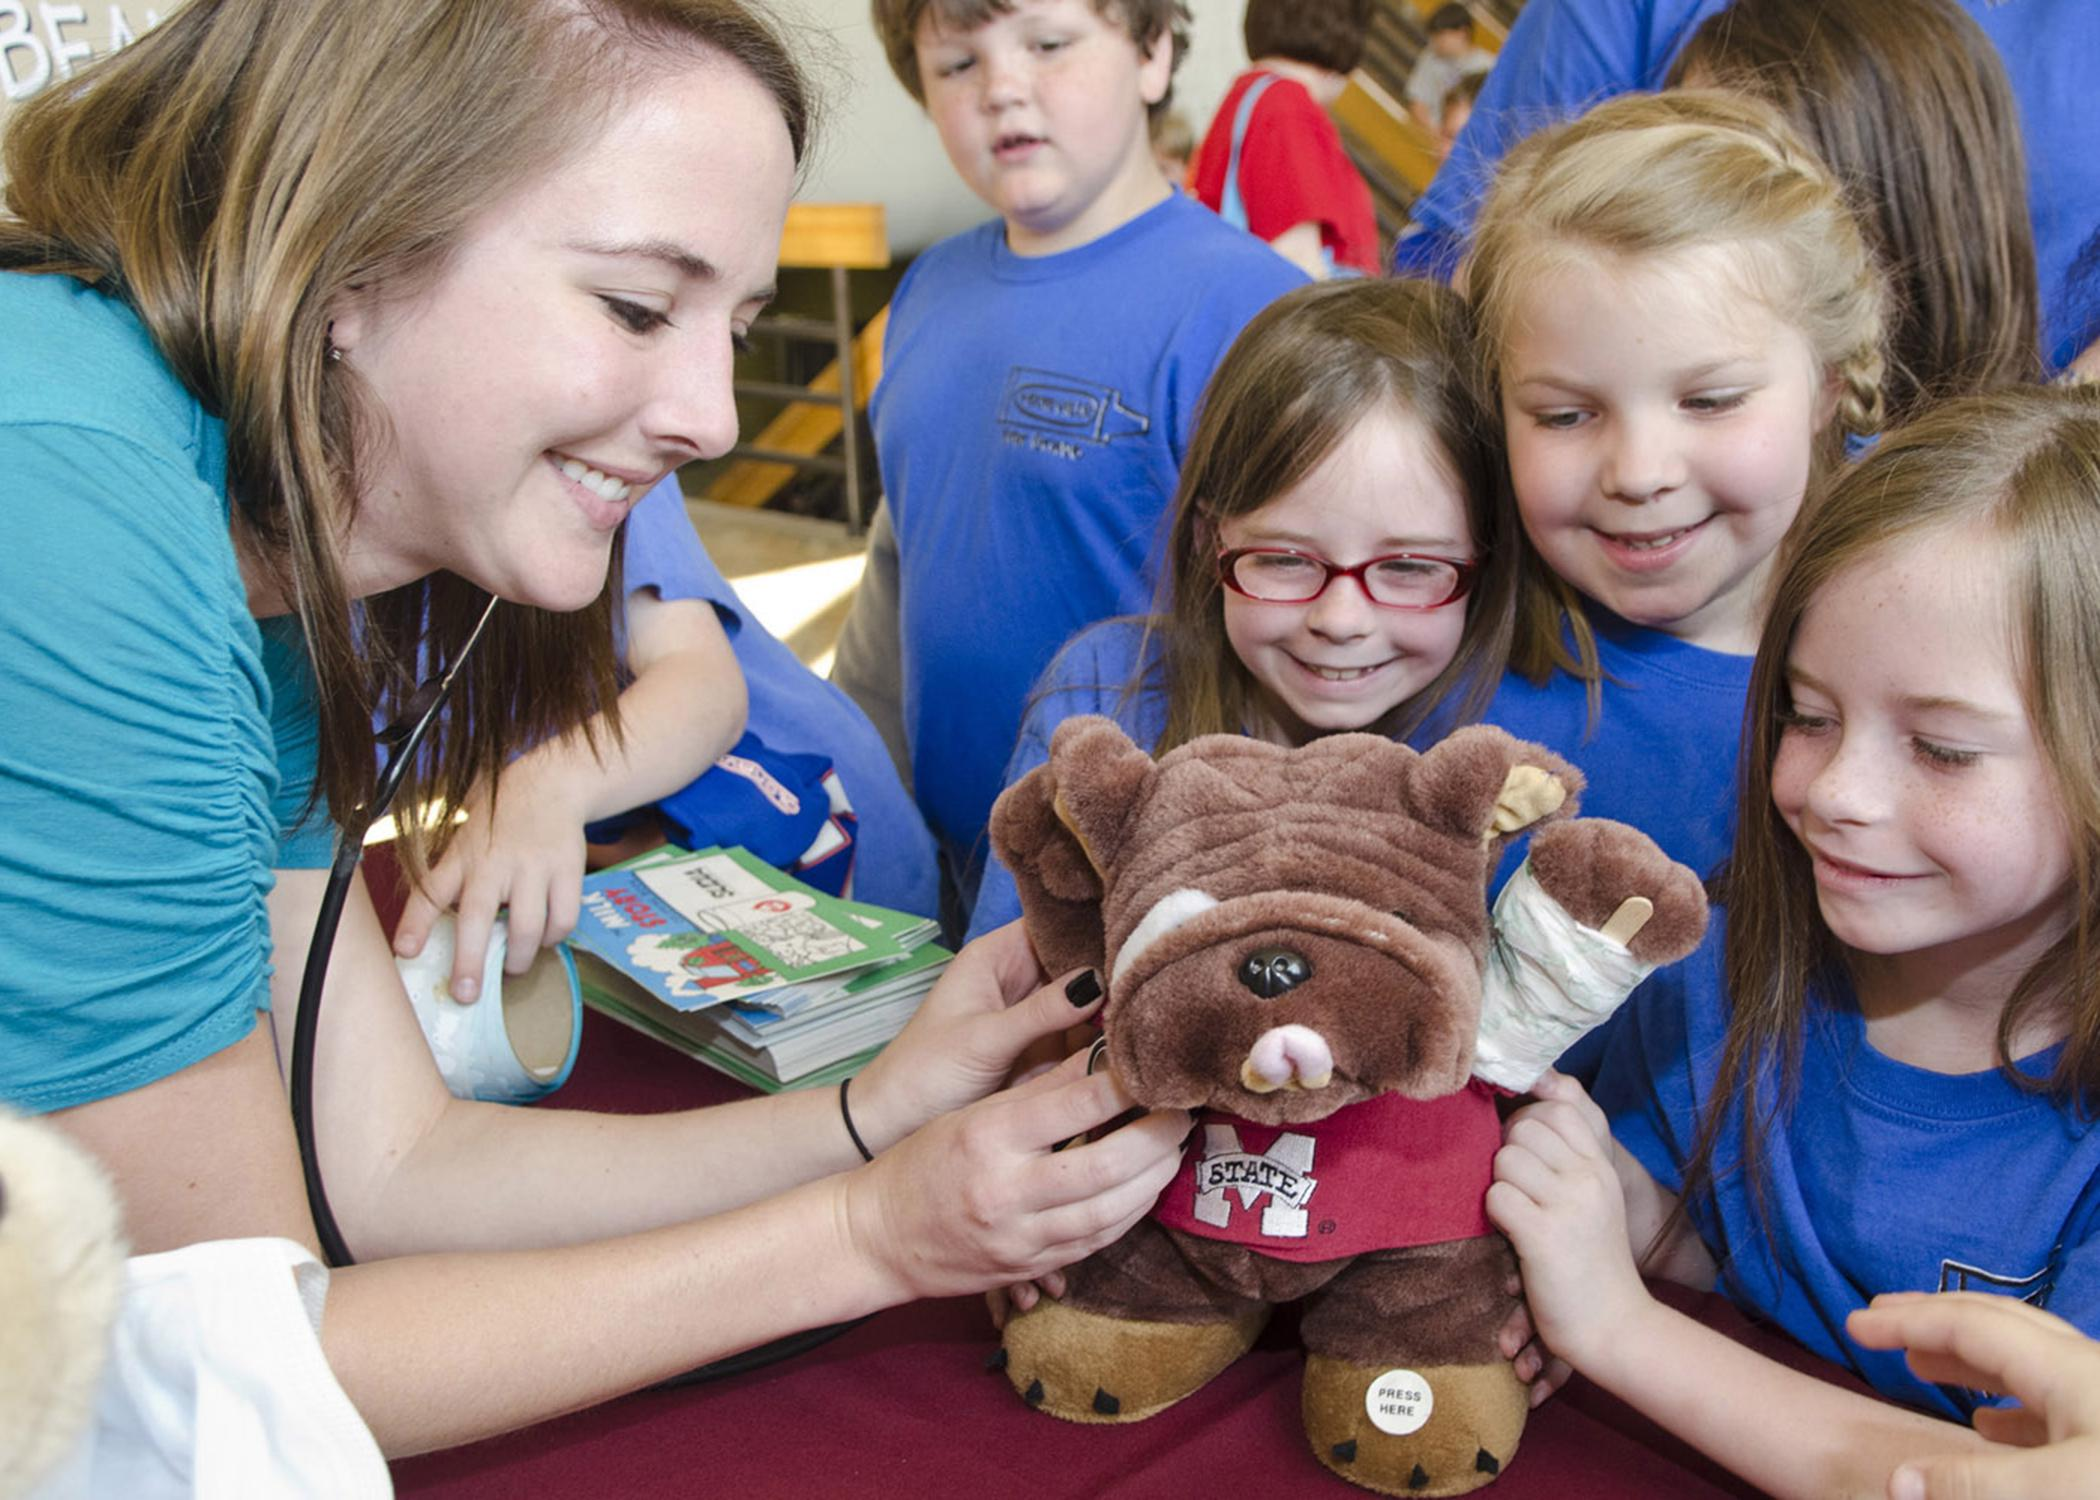 Children who attend the annual Mississippi State University College of Veterinary Medicine Open House get many opportunities to participate in hands-on activities and demonstrations. (Photo by MSU College of Veterinary Medicine/Tom Thompson)